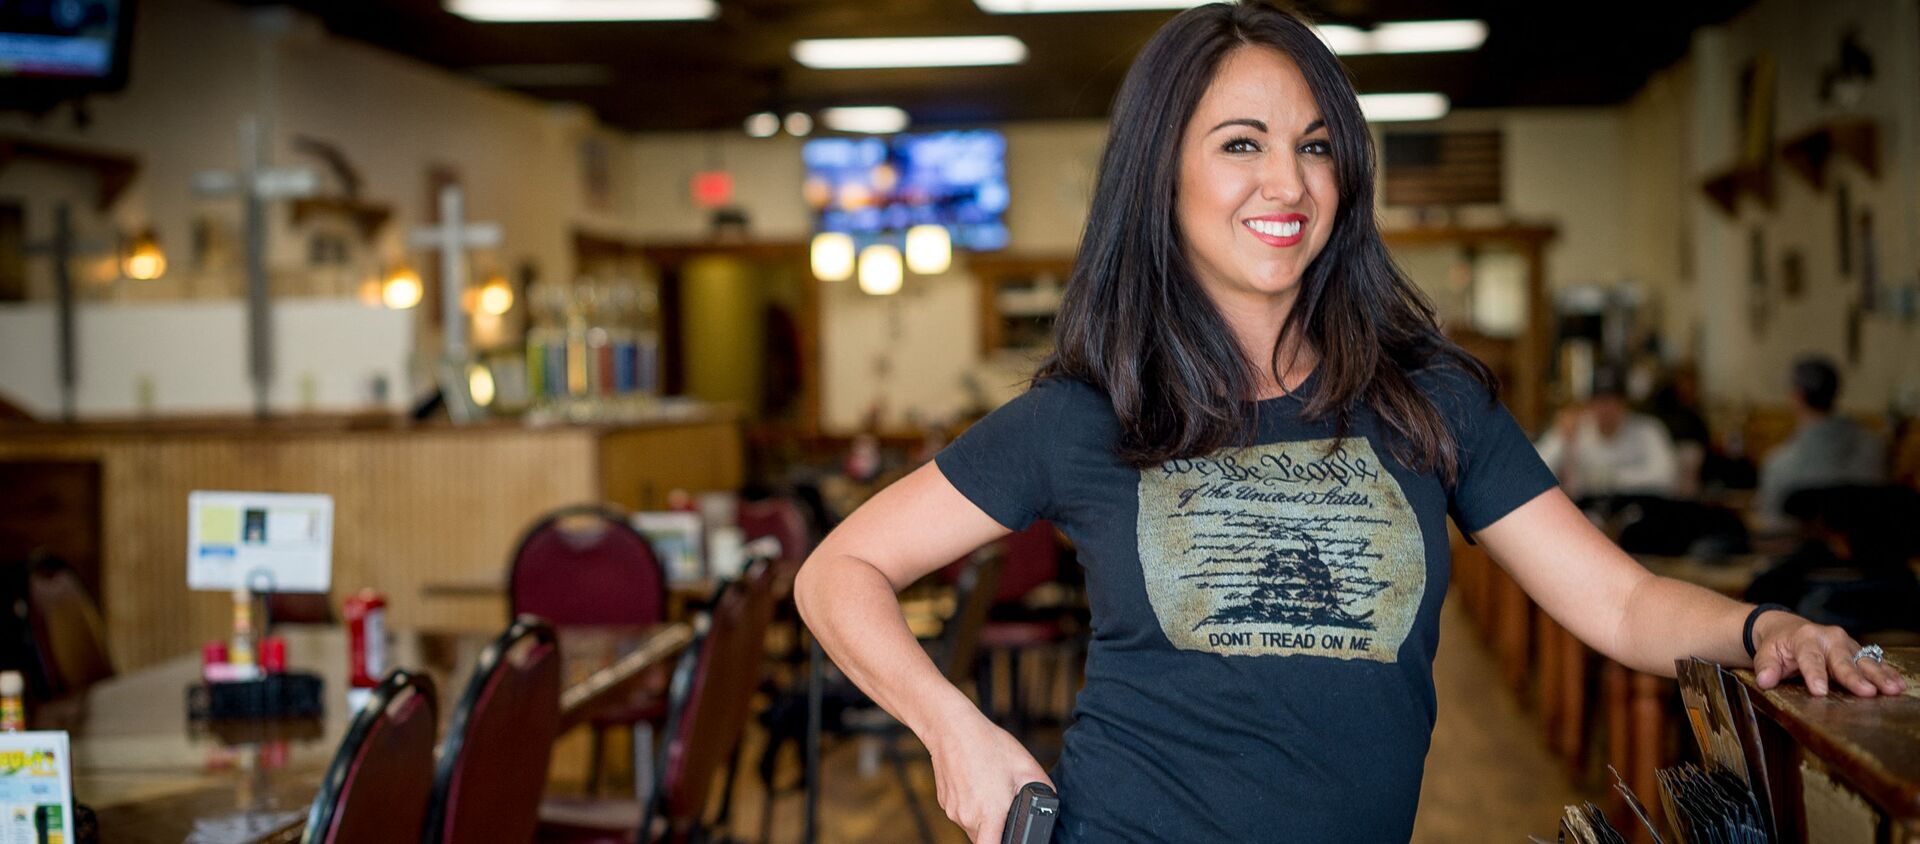 In this file photo owner Lauren Boebert poses for a portrait at Shooters Grill in Rifle, Colorado on April 24, 2018. - A Republican member of the US Congress raised eyebrows on February 18, 2021 when she appeared at a Zoom committee meeting with an arsenal of guns strategically displayed in her background. - Sputnik International, 1920, 19.02.2021